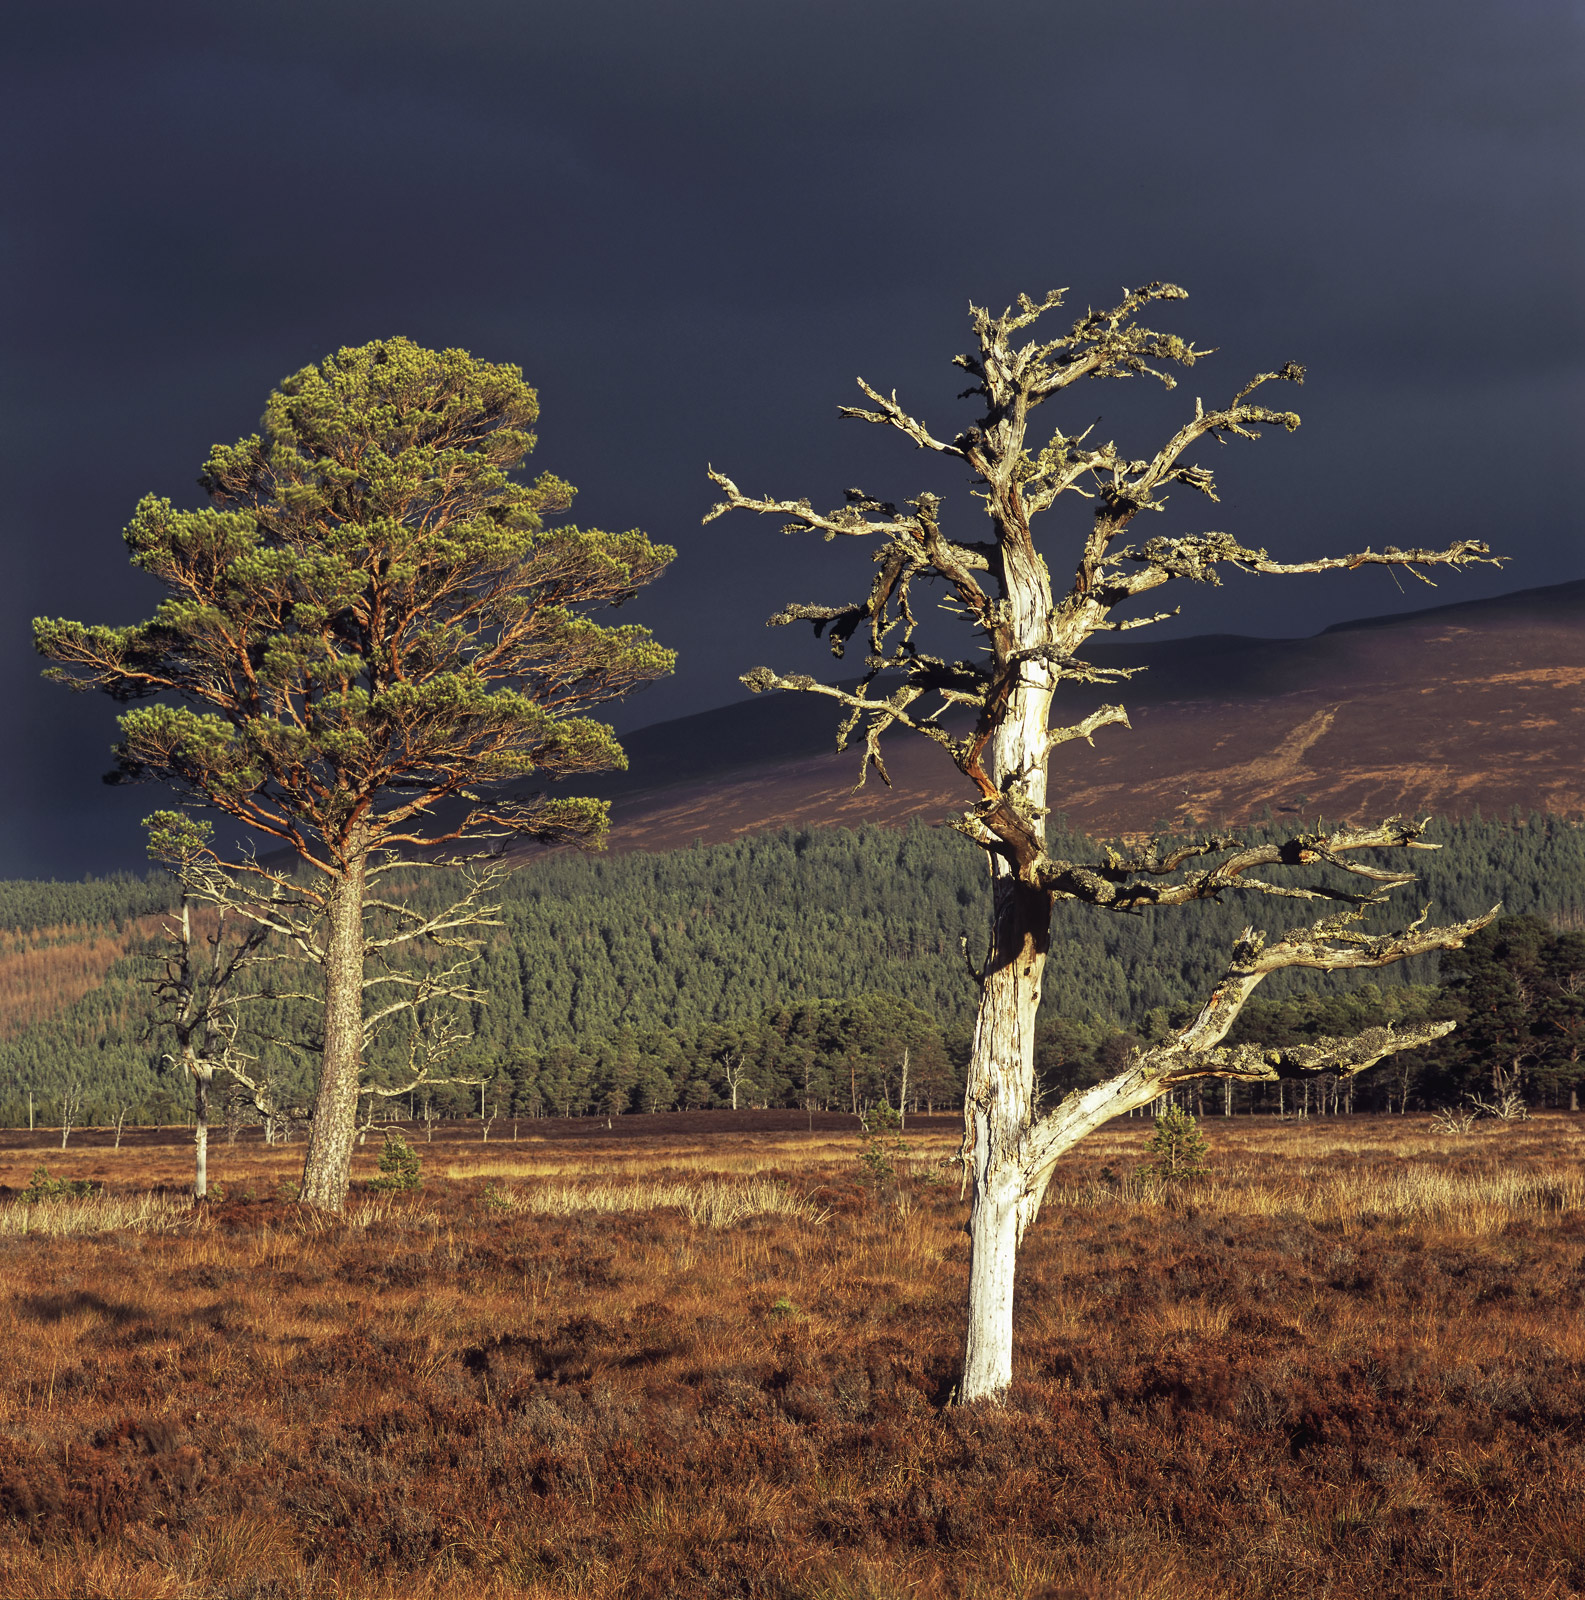 Two scots pines one very much alive and loaded with needles the other dead, just thebare bones of old twisted branches...